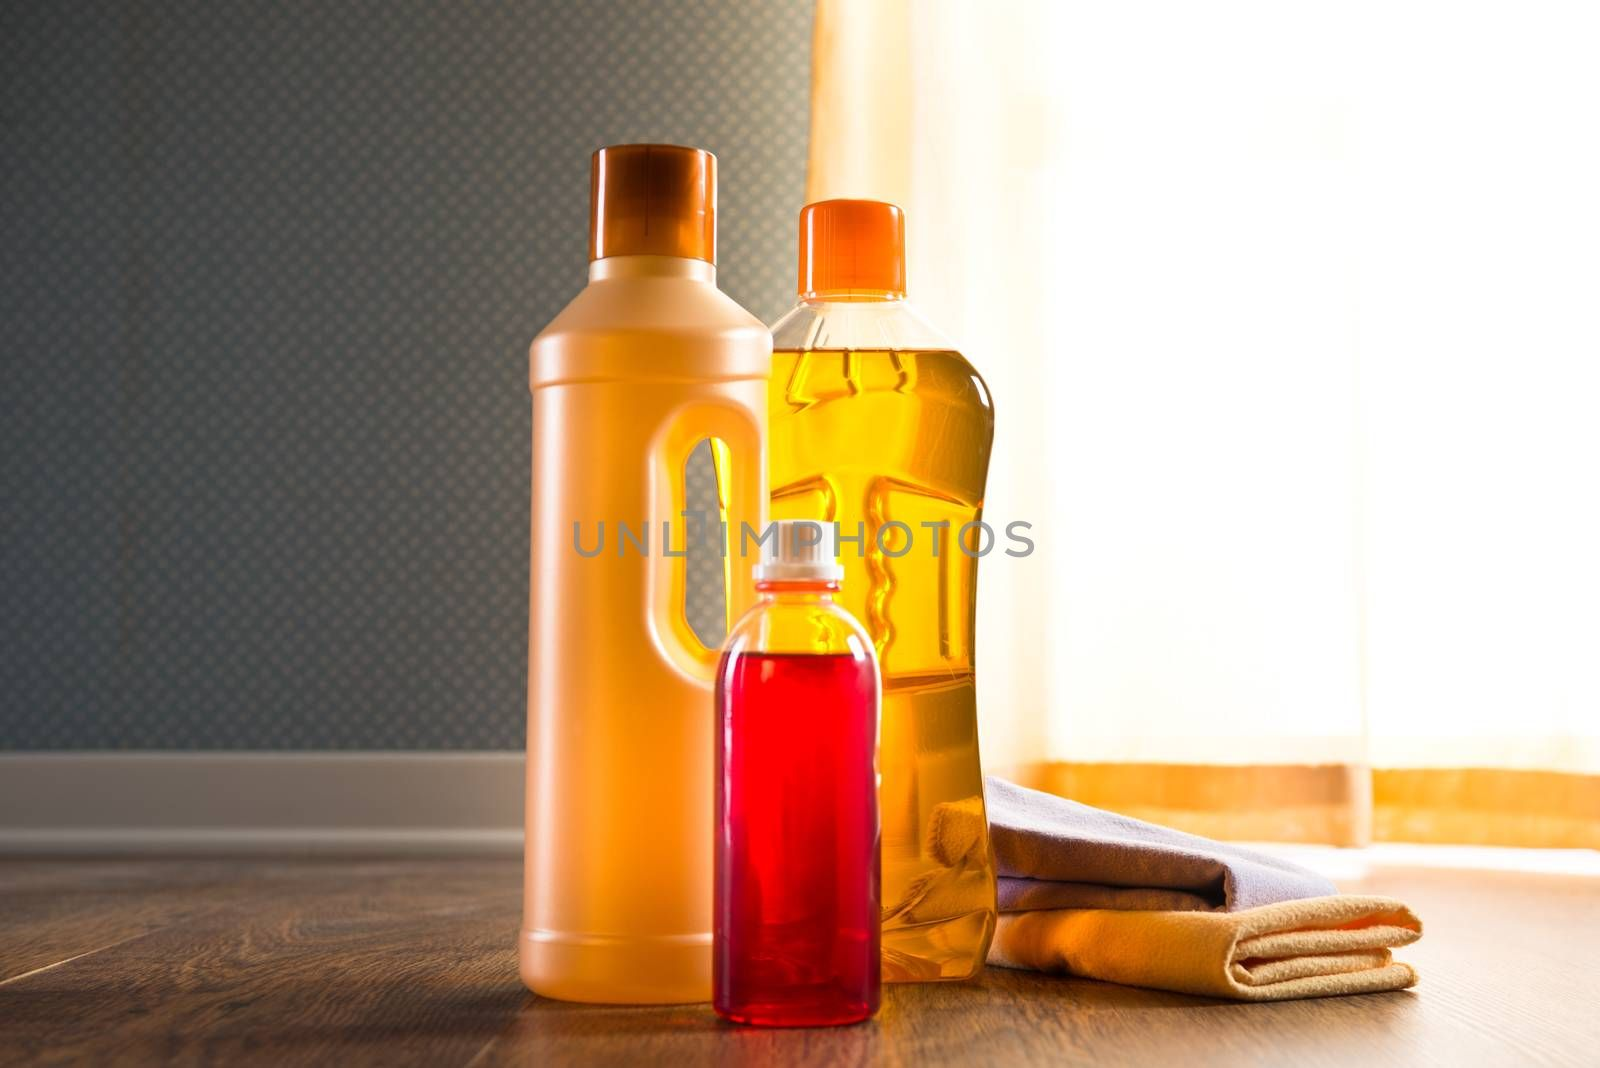 Detergent products for hardwood floor care and manteinance on parquet.